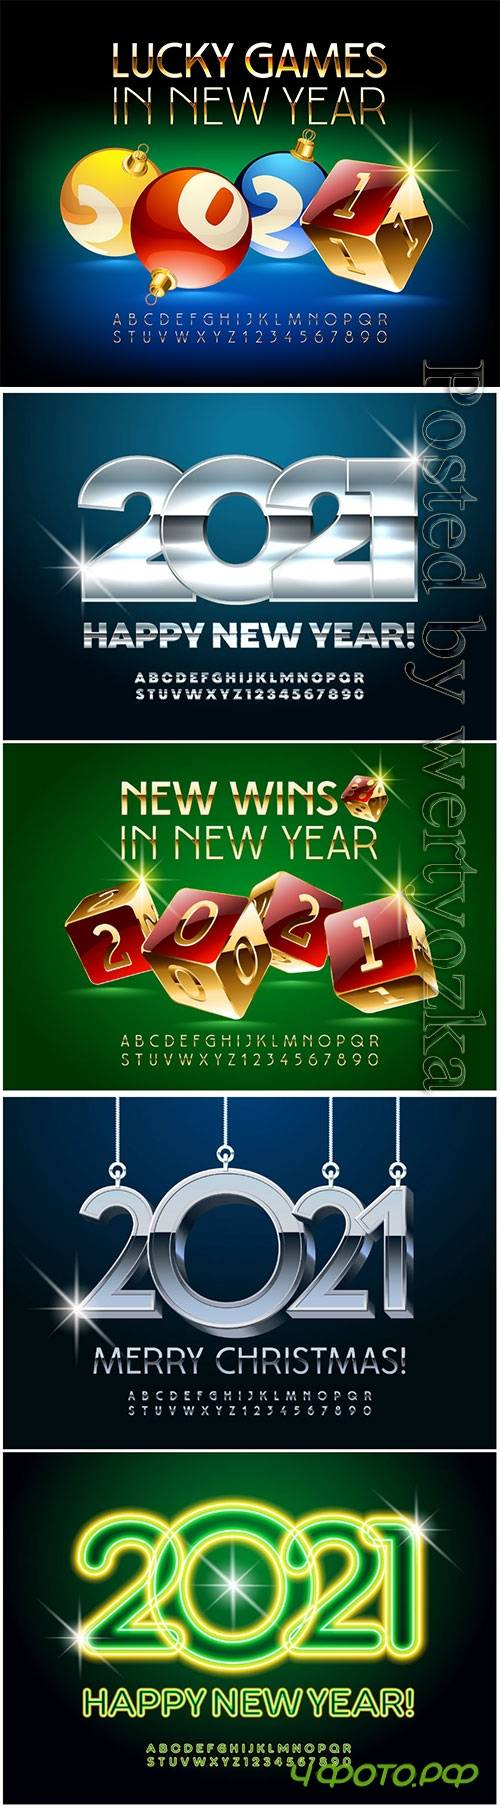 Merry christmas 2021, golde alphabet letters and numbers, shiny font vol 2